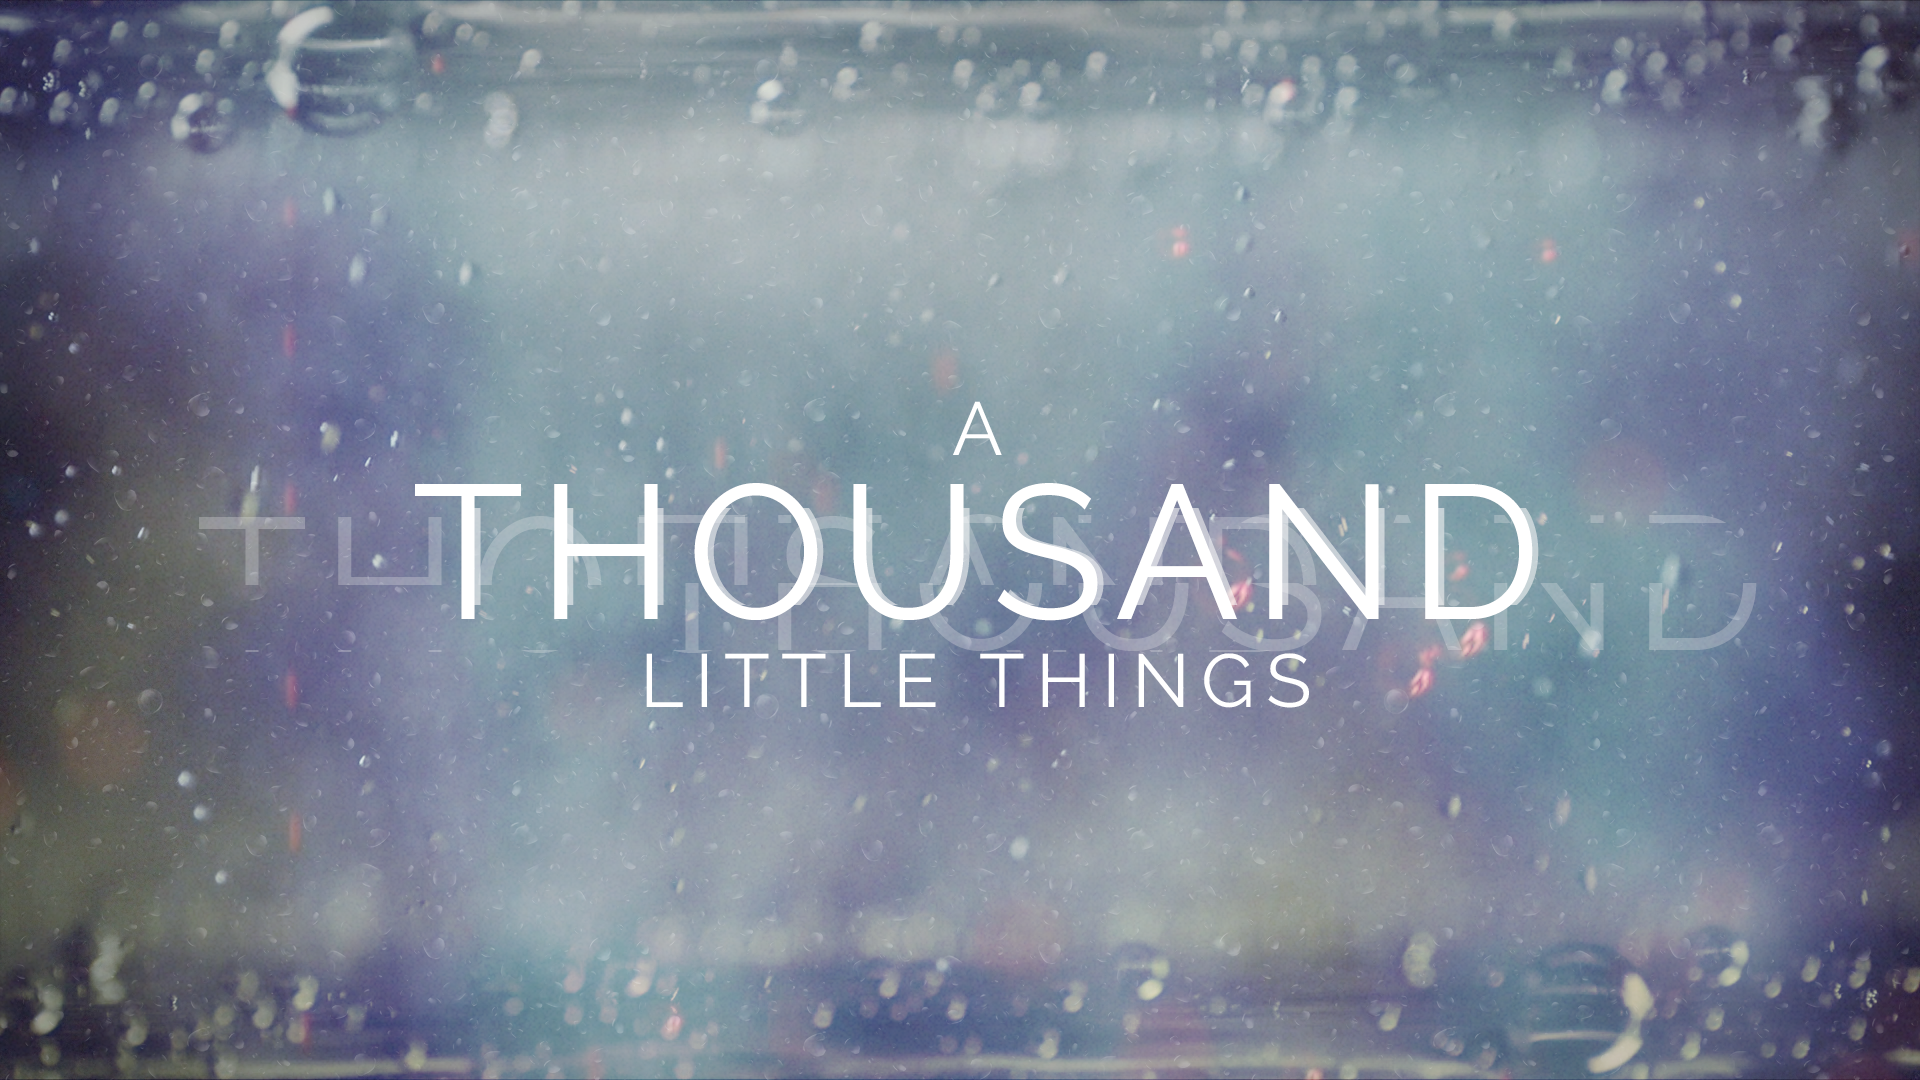 AThousandLittleThings_Graphic_1920x1080_FINAL.png